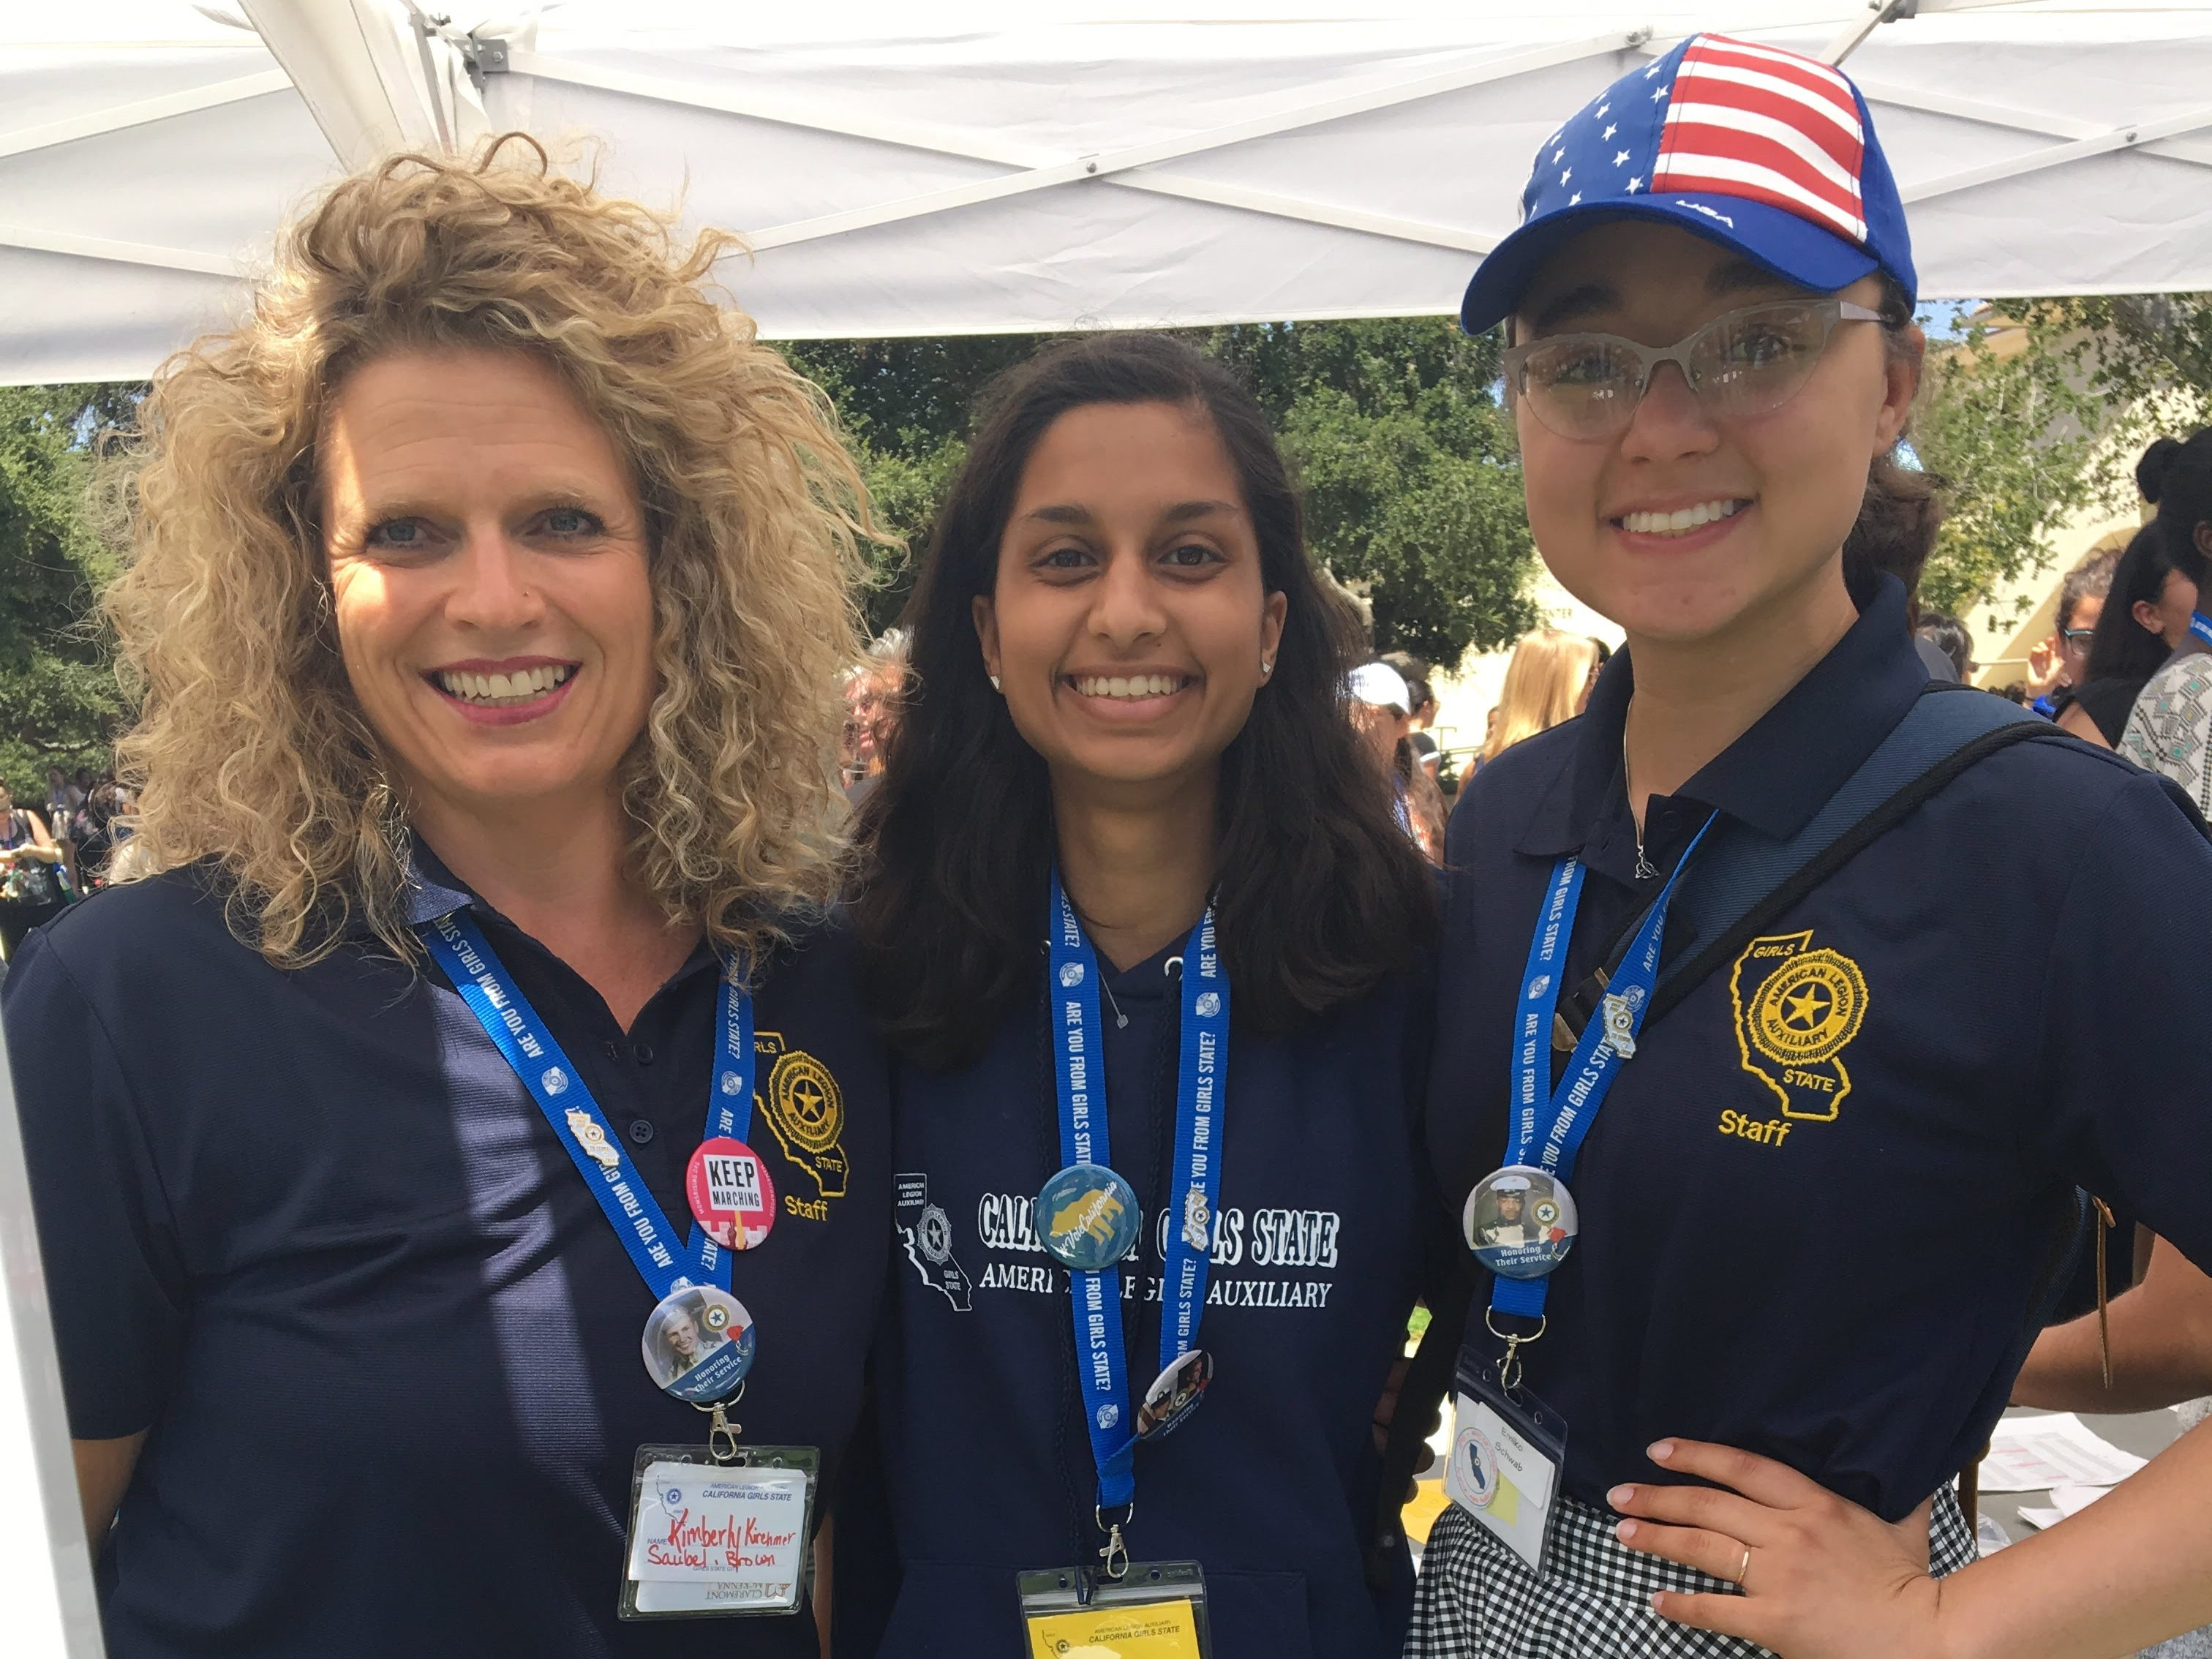 Eman Khatri, center, with two female staff from California Girls State on either side.